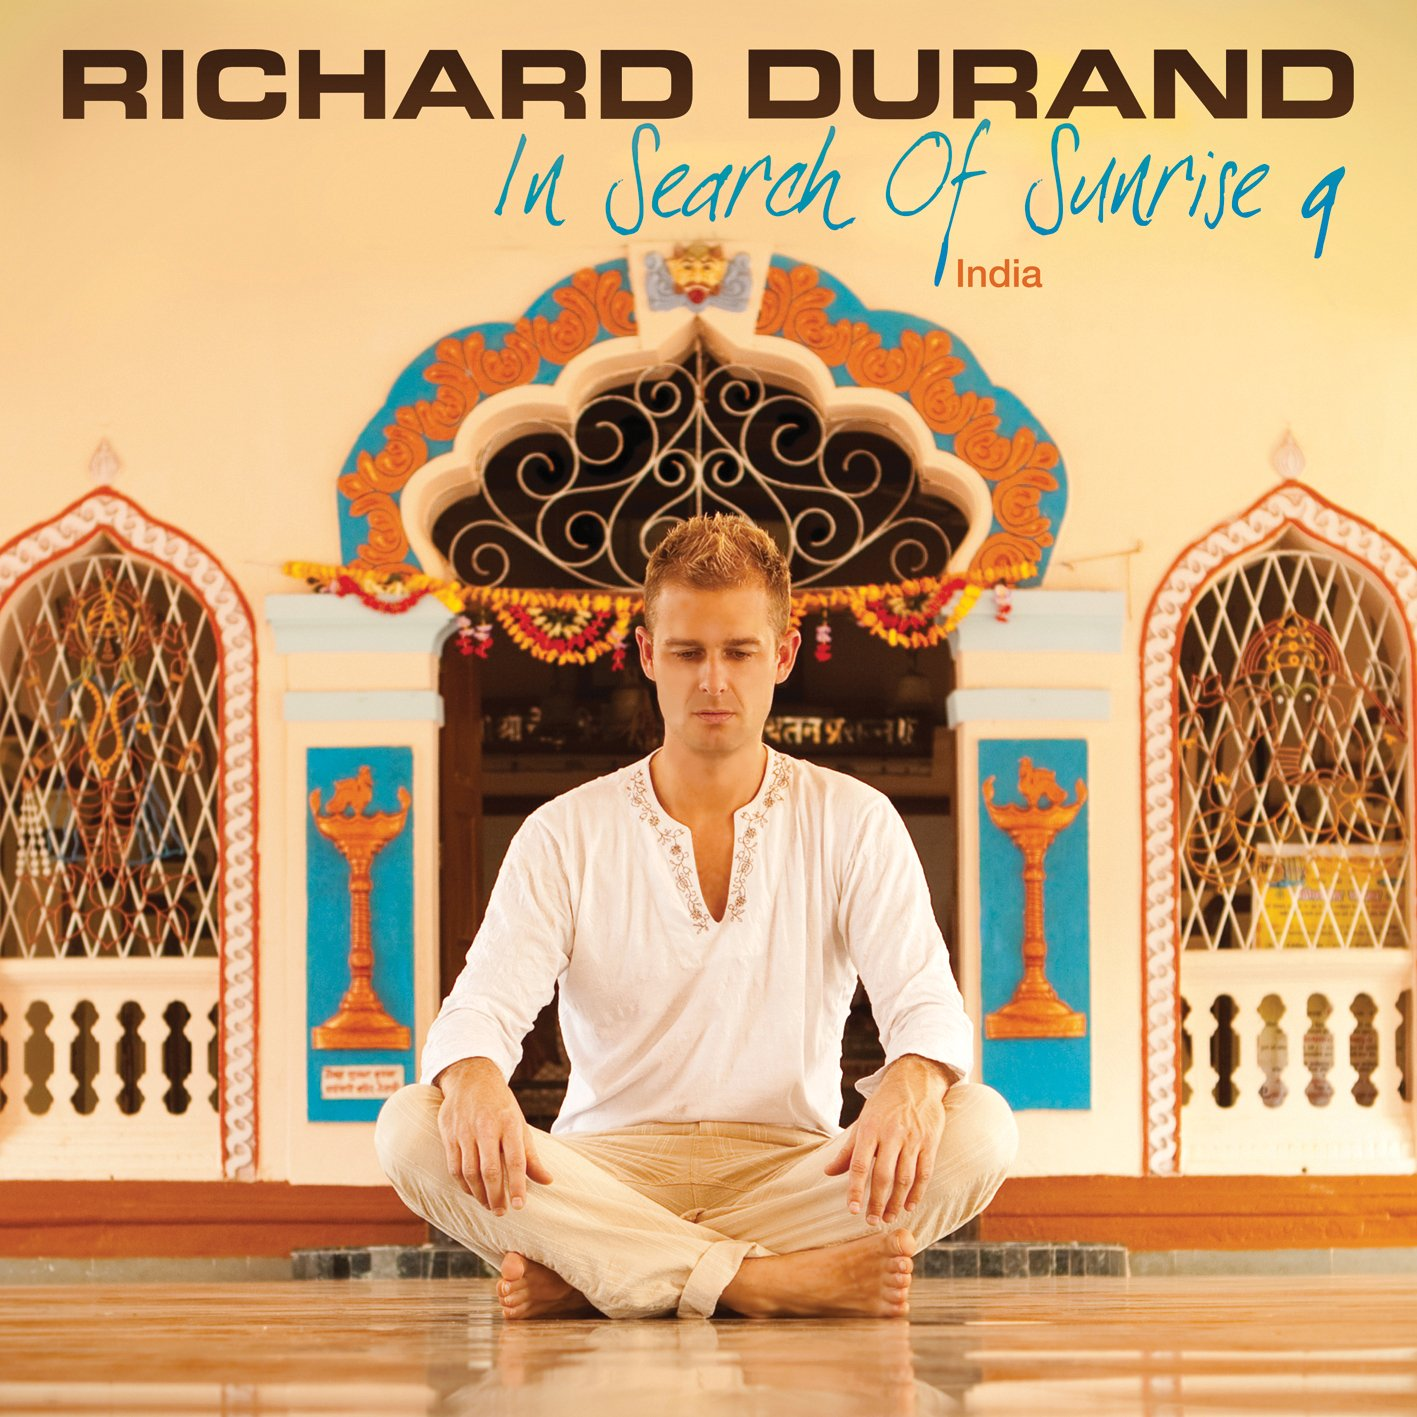 VA – In Search Of Sunrise 9 India  Richard Durand (2011) [FLAC]